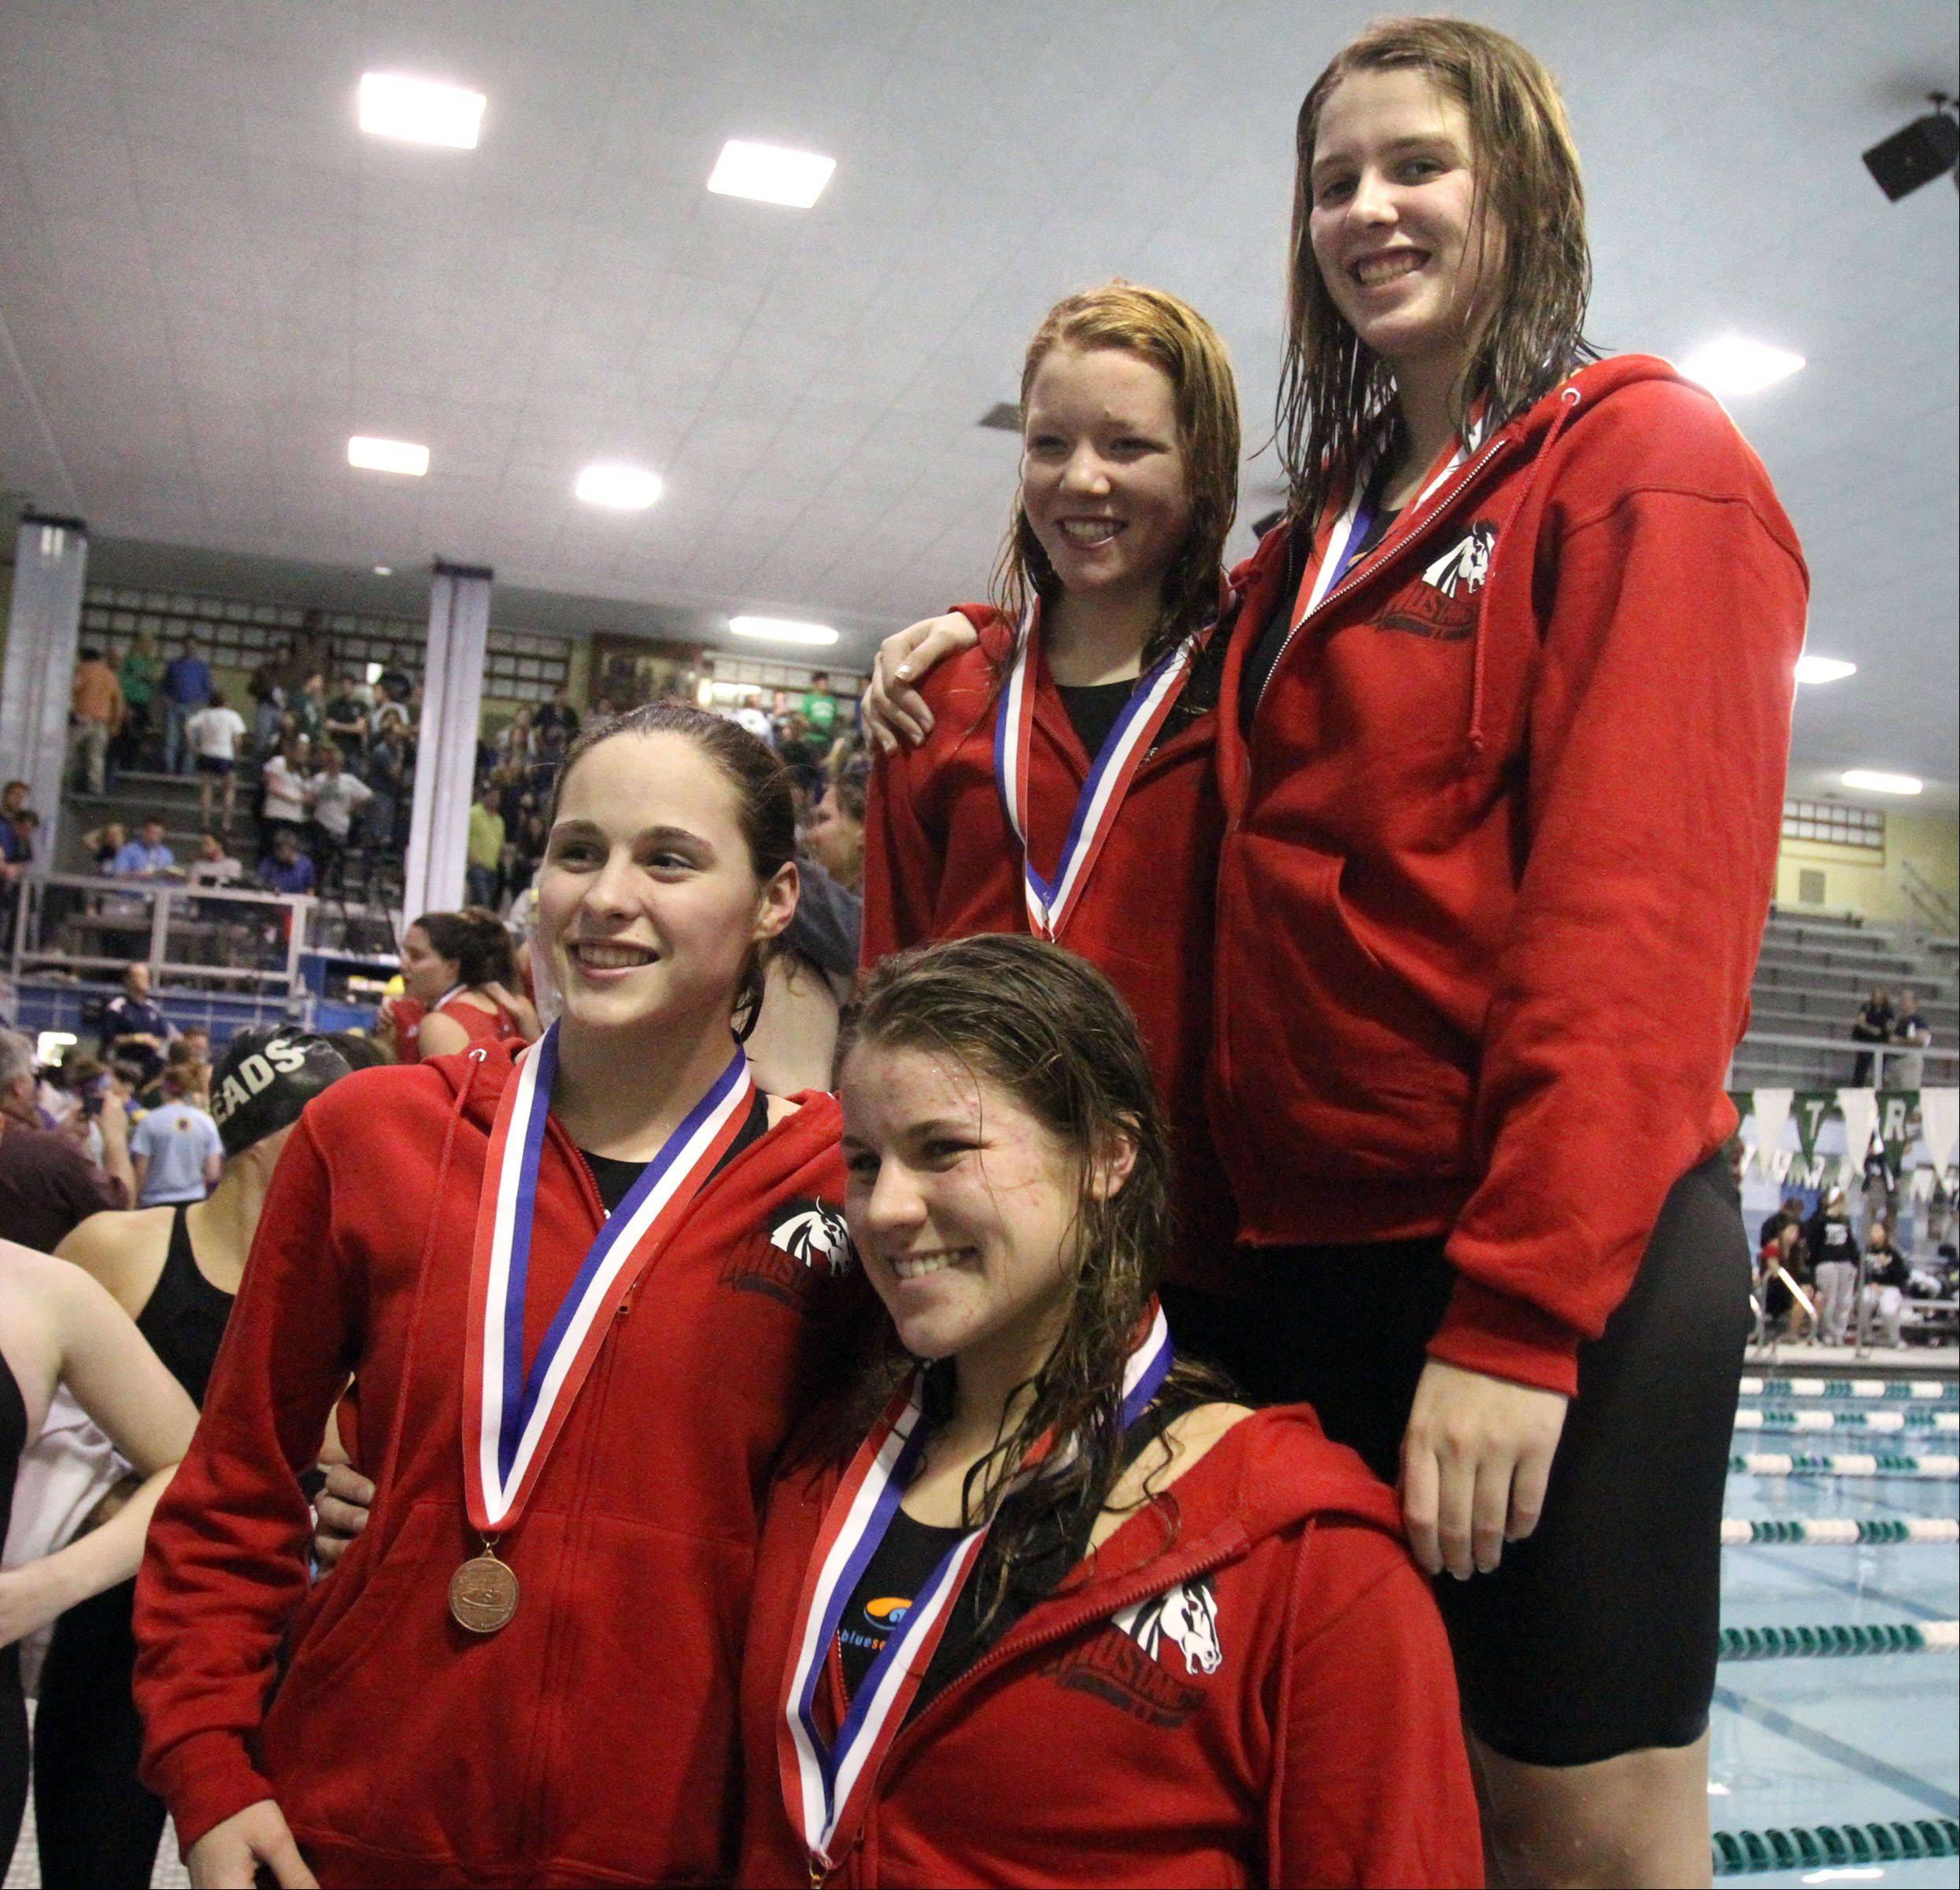 Mundelein's Karrie Kozokar, right, will swim the 100-yard freestyle in the state series.She's pictured here at state last year with, from left, Amy Klink, Jennifer Kordik and Erin Falconer after they placed eighth in the 400 freestyle relay.